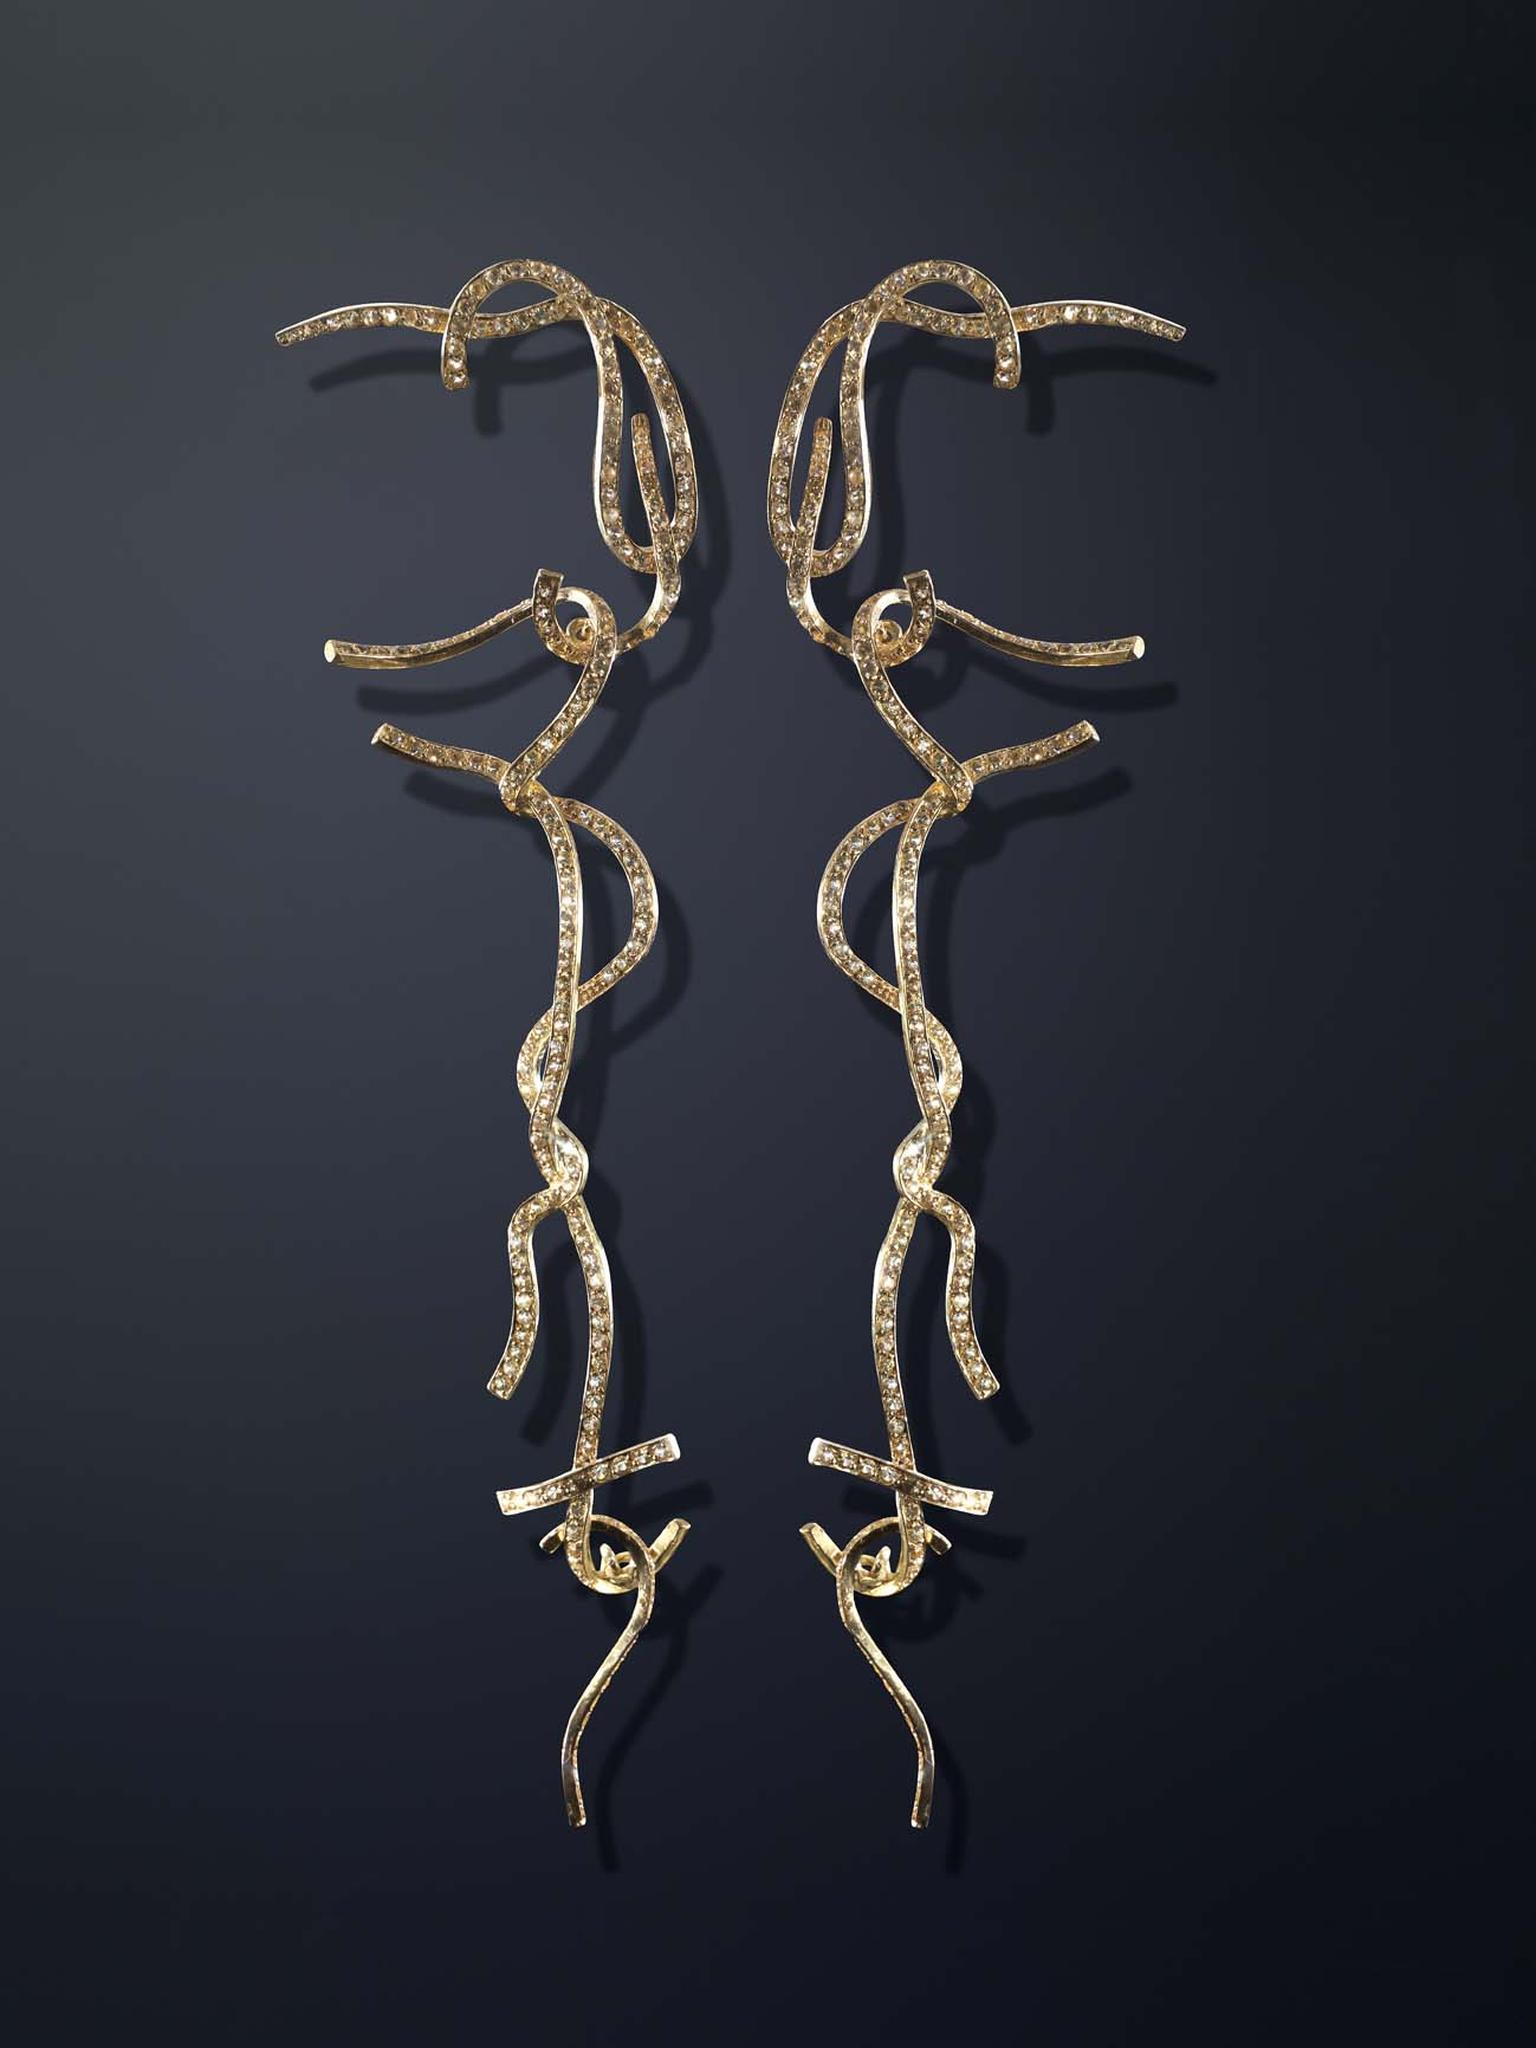 Luz Camino Shoestring Potato gold earrings with sapphires. Limited edition of 20.